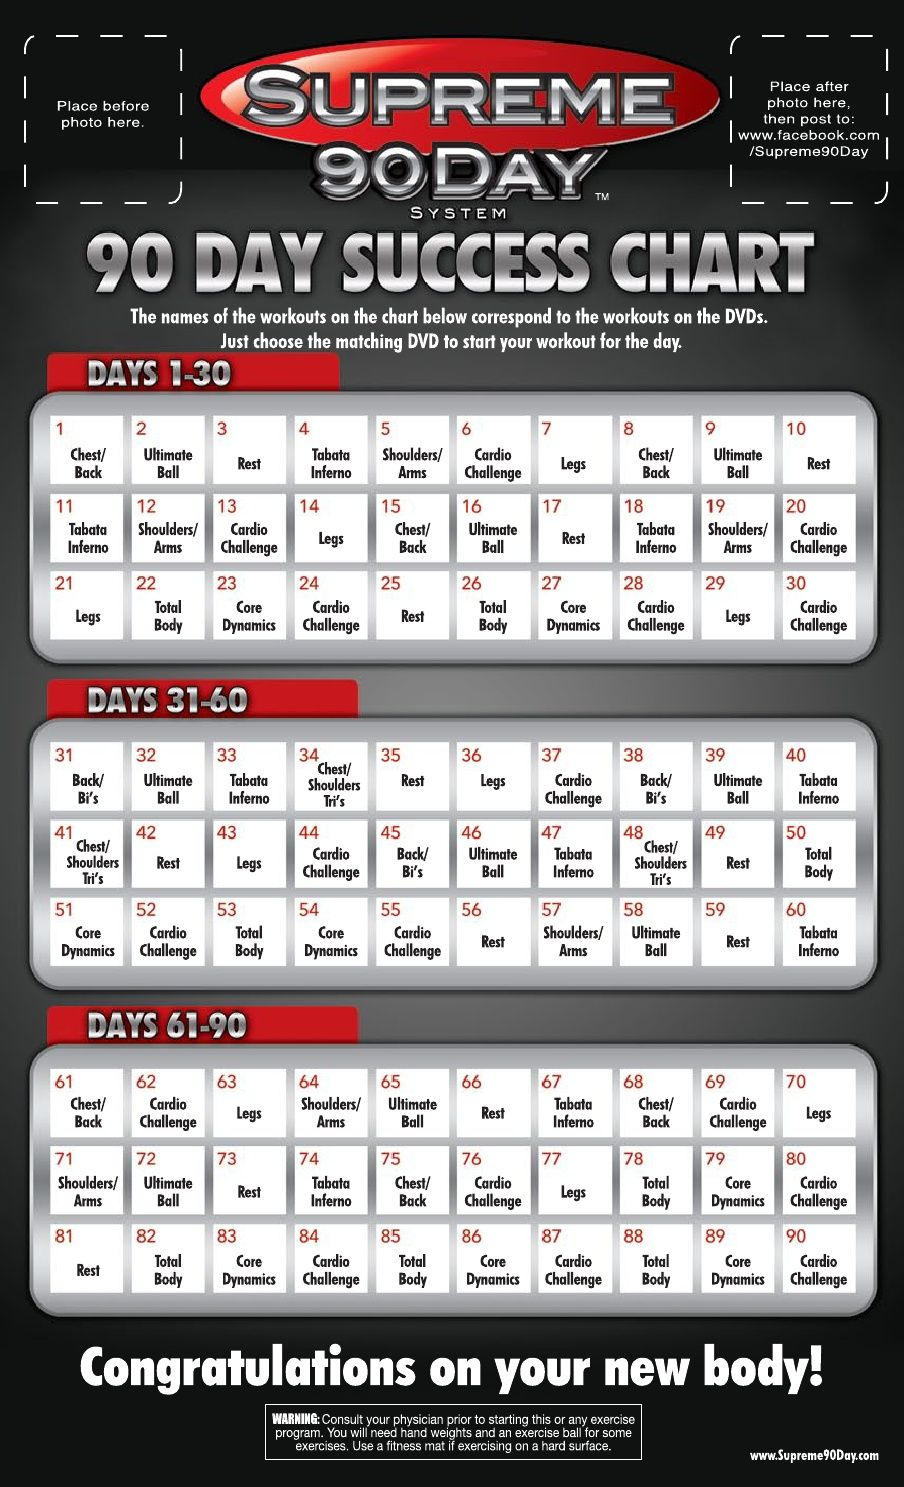 Supreme 90 Day WorkOut Schedule with Time | 90 day workout plan...